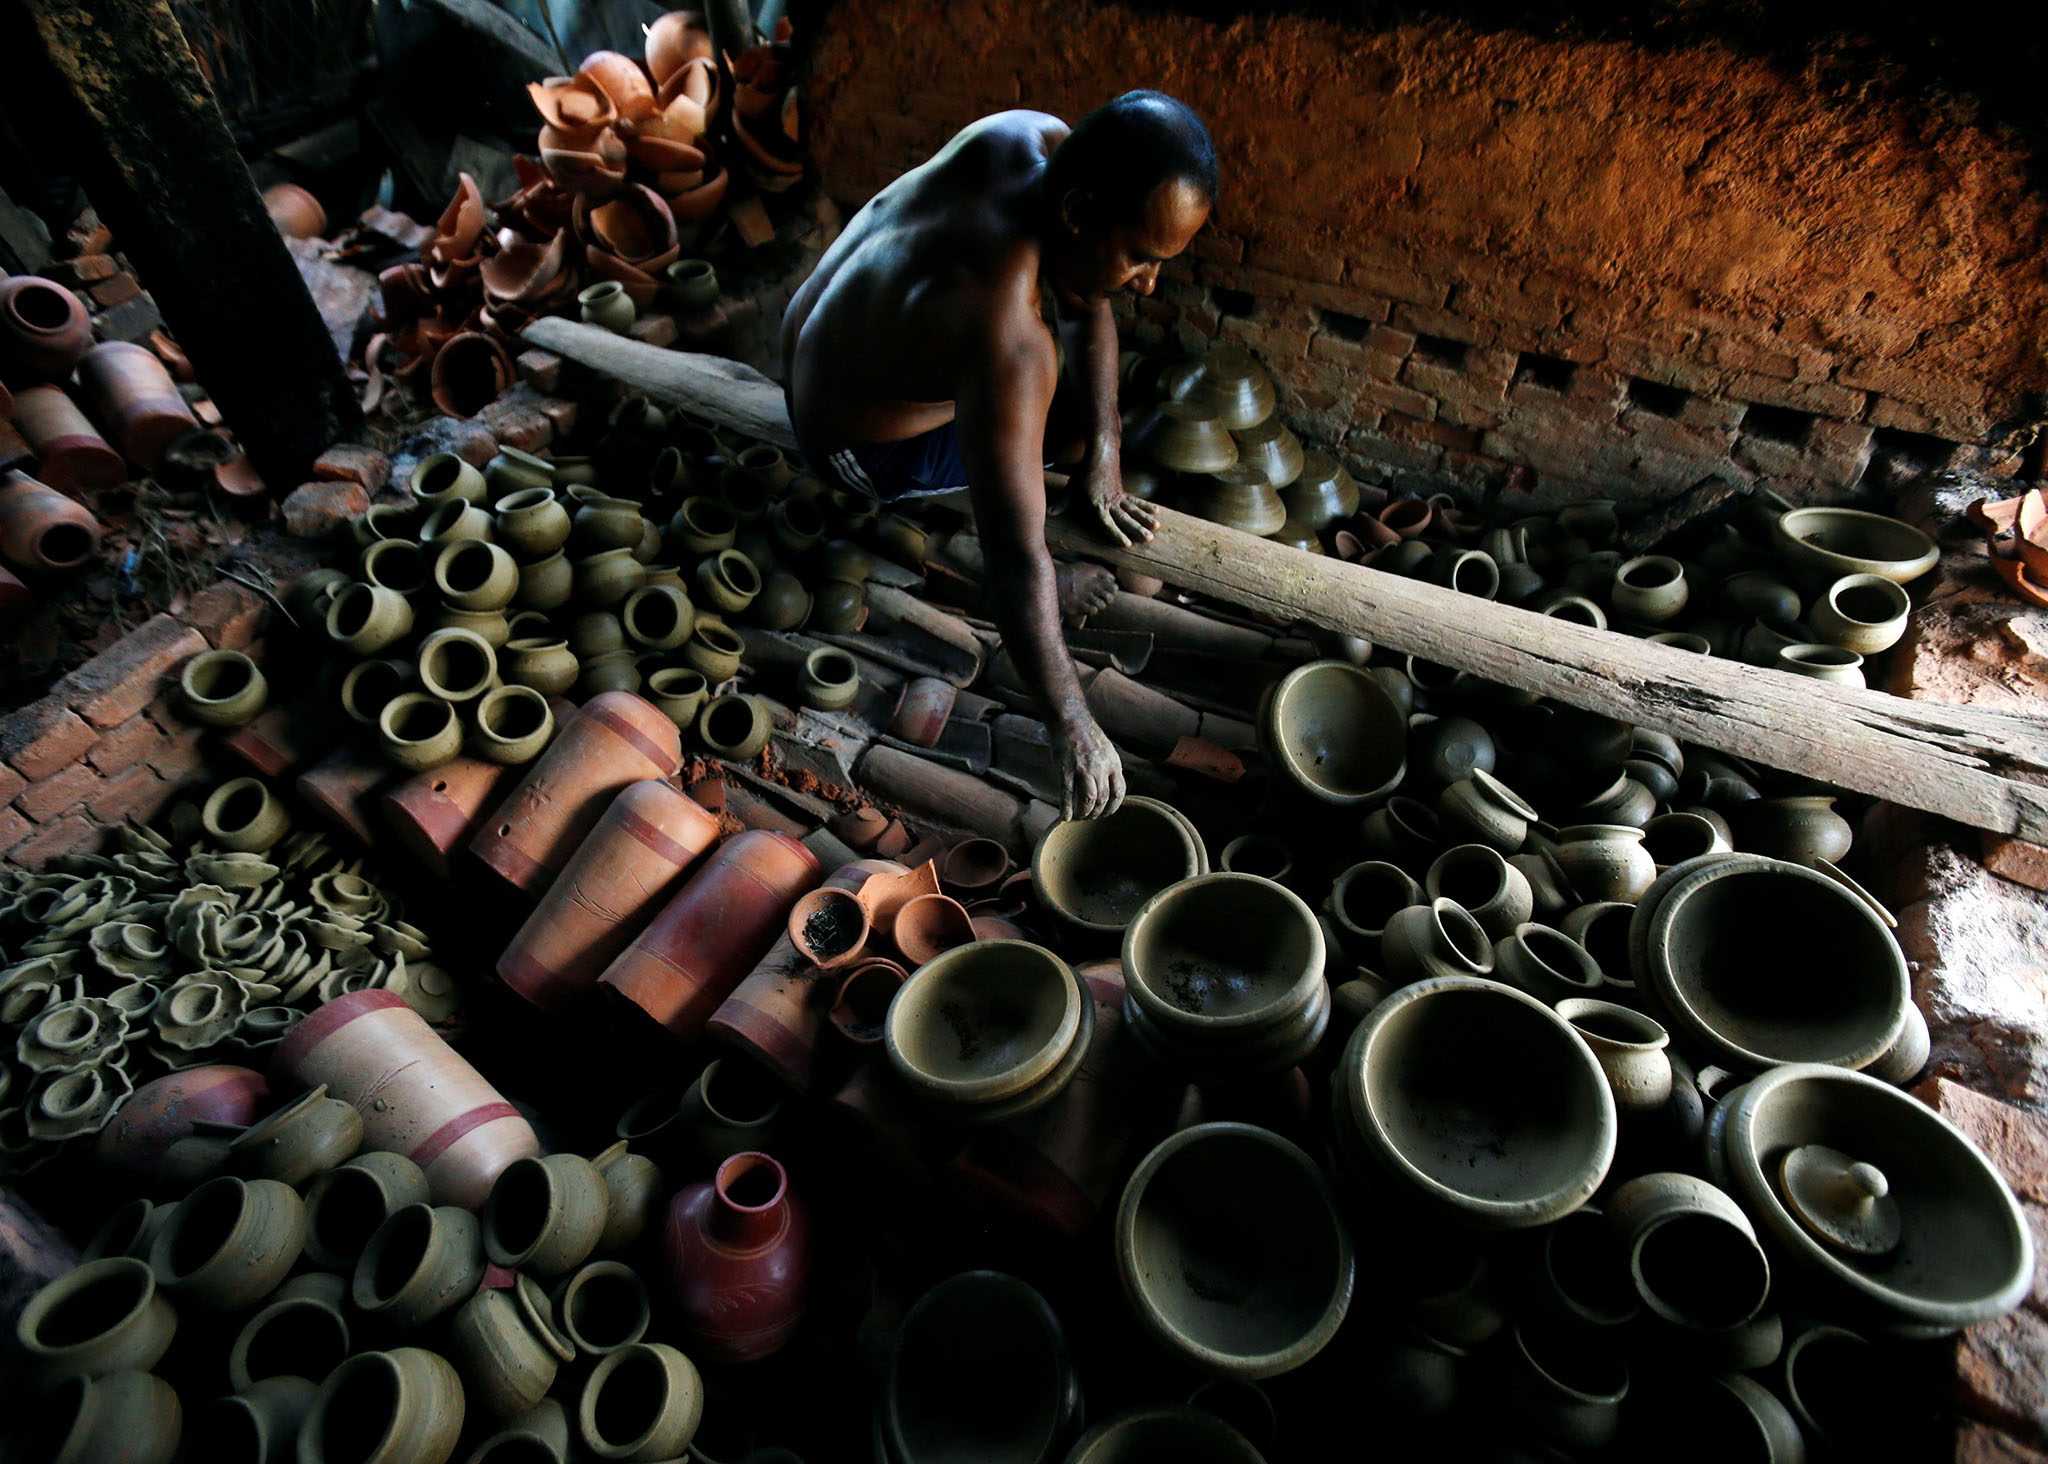 A man places newly made clay pots in a fire pit at a workshop in Biyagama, Sri Lanka November 16, 2016. REUTERS/Dinuka Liyanawatte